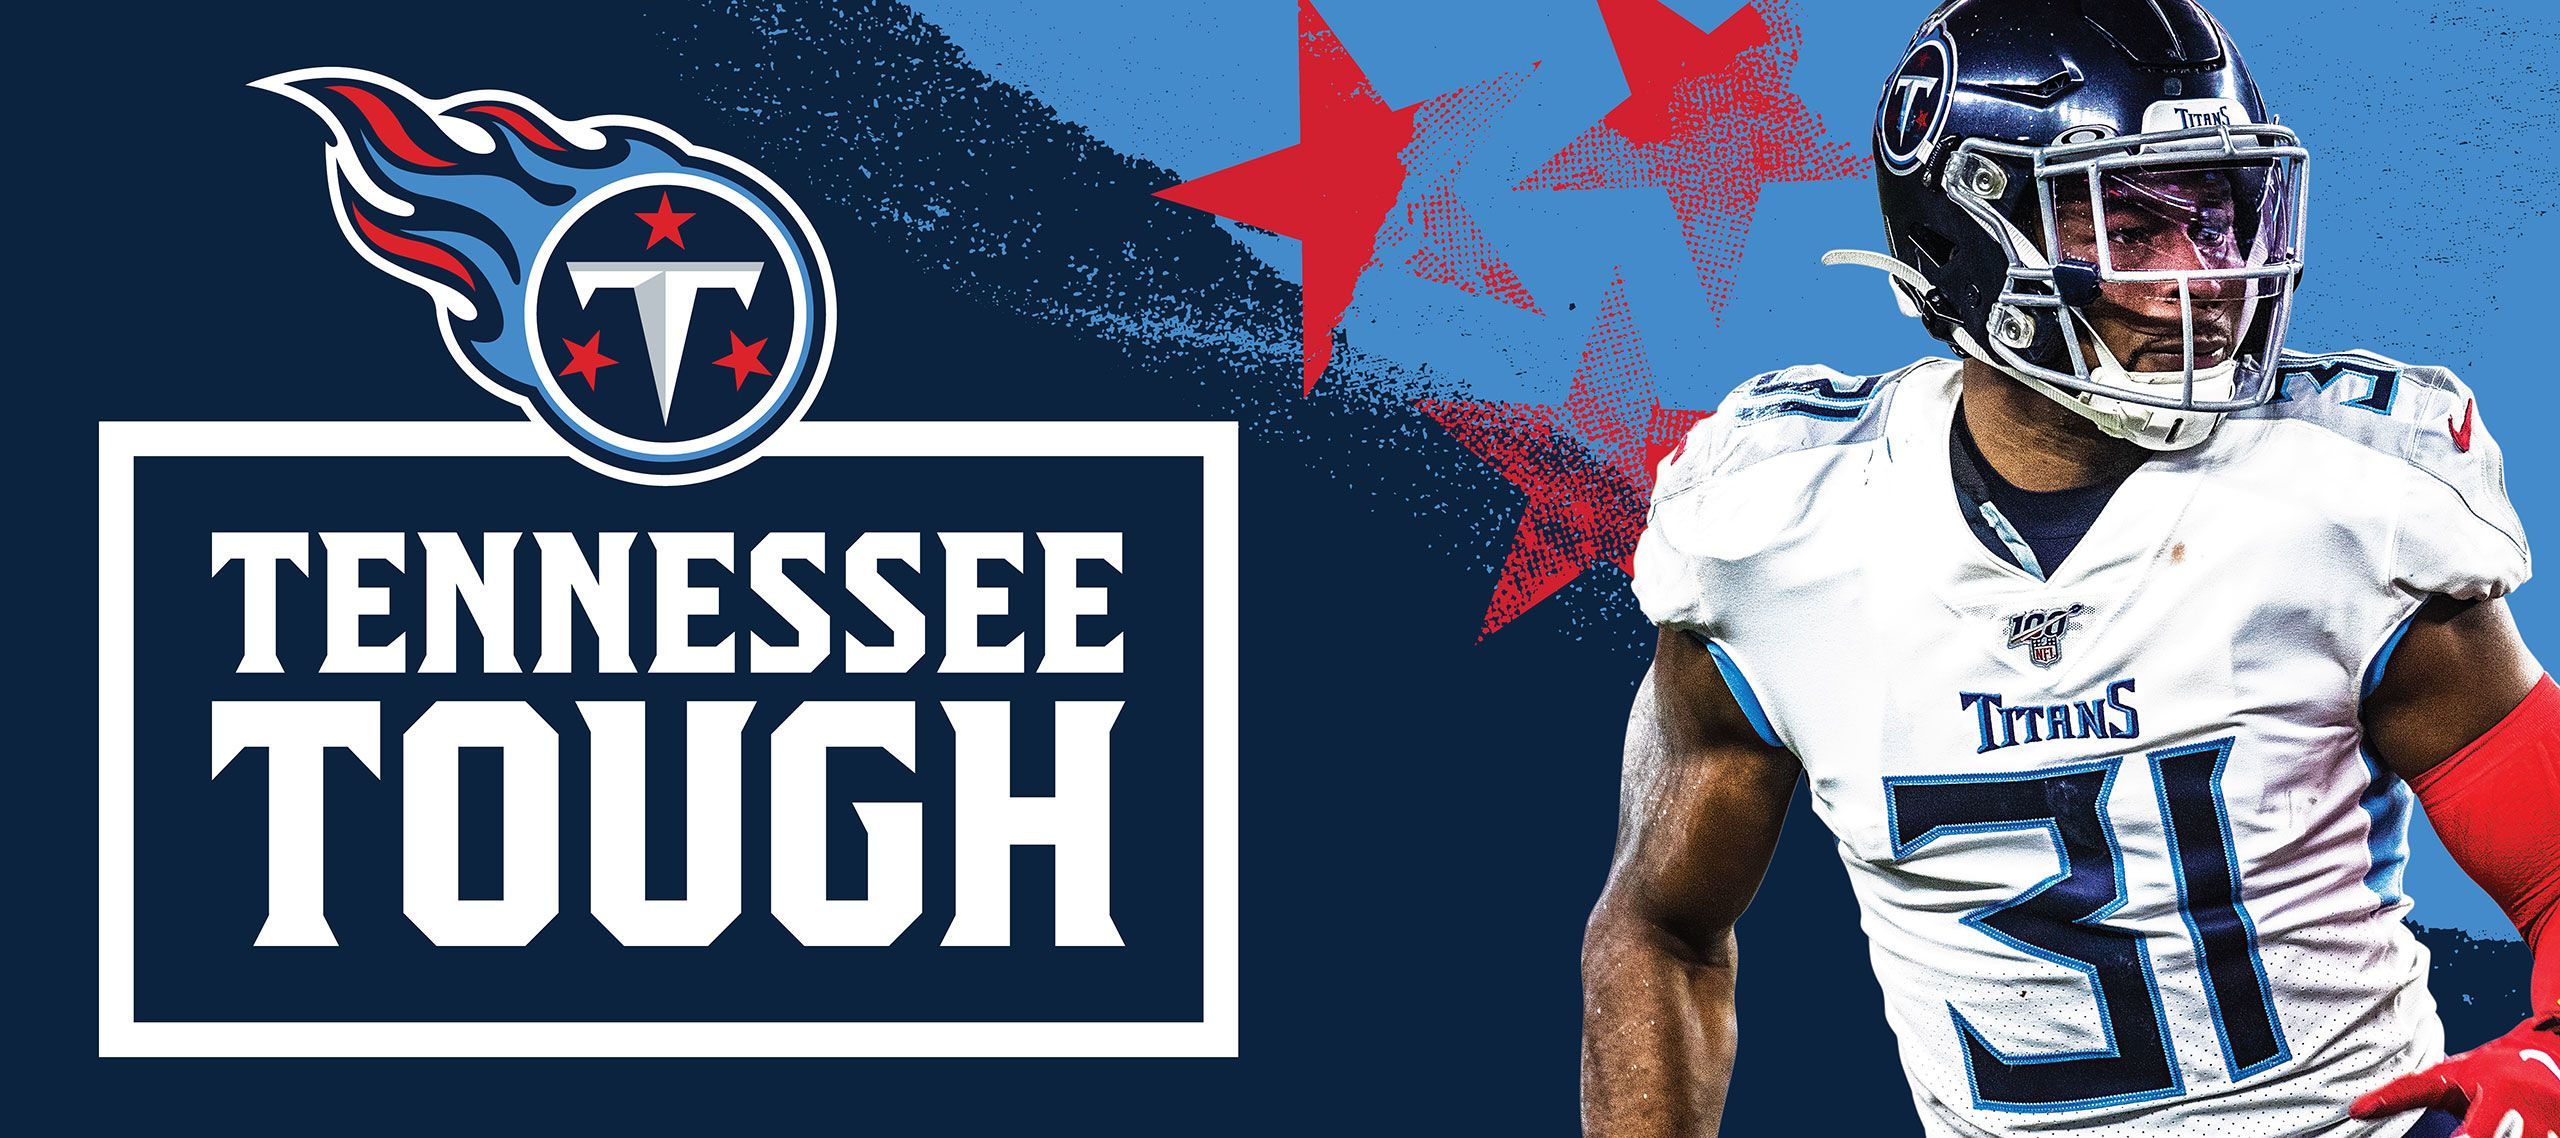 tennessee-tough-page-header